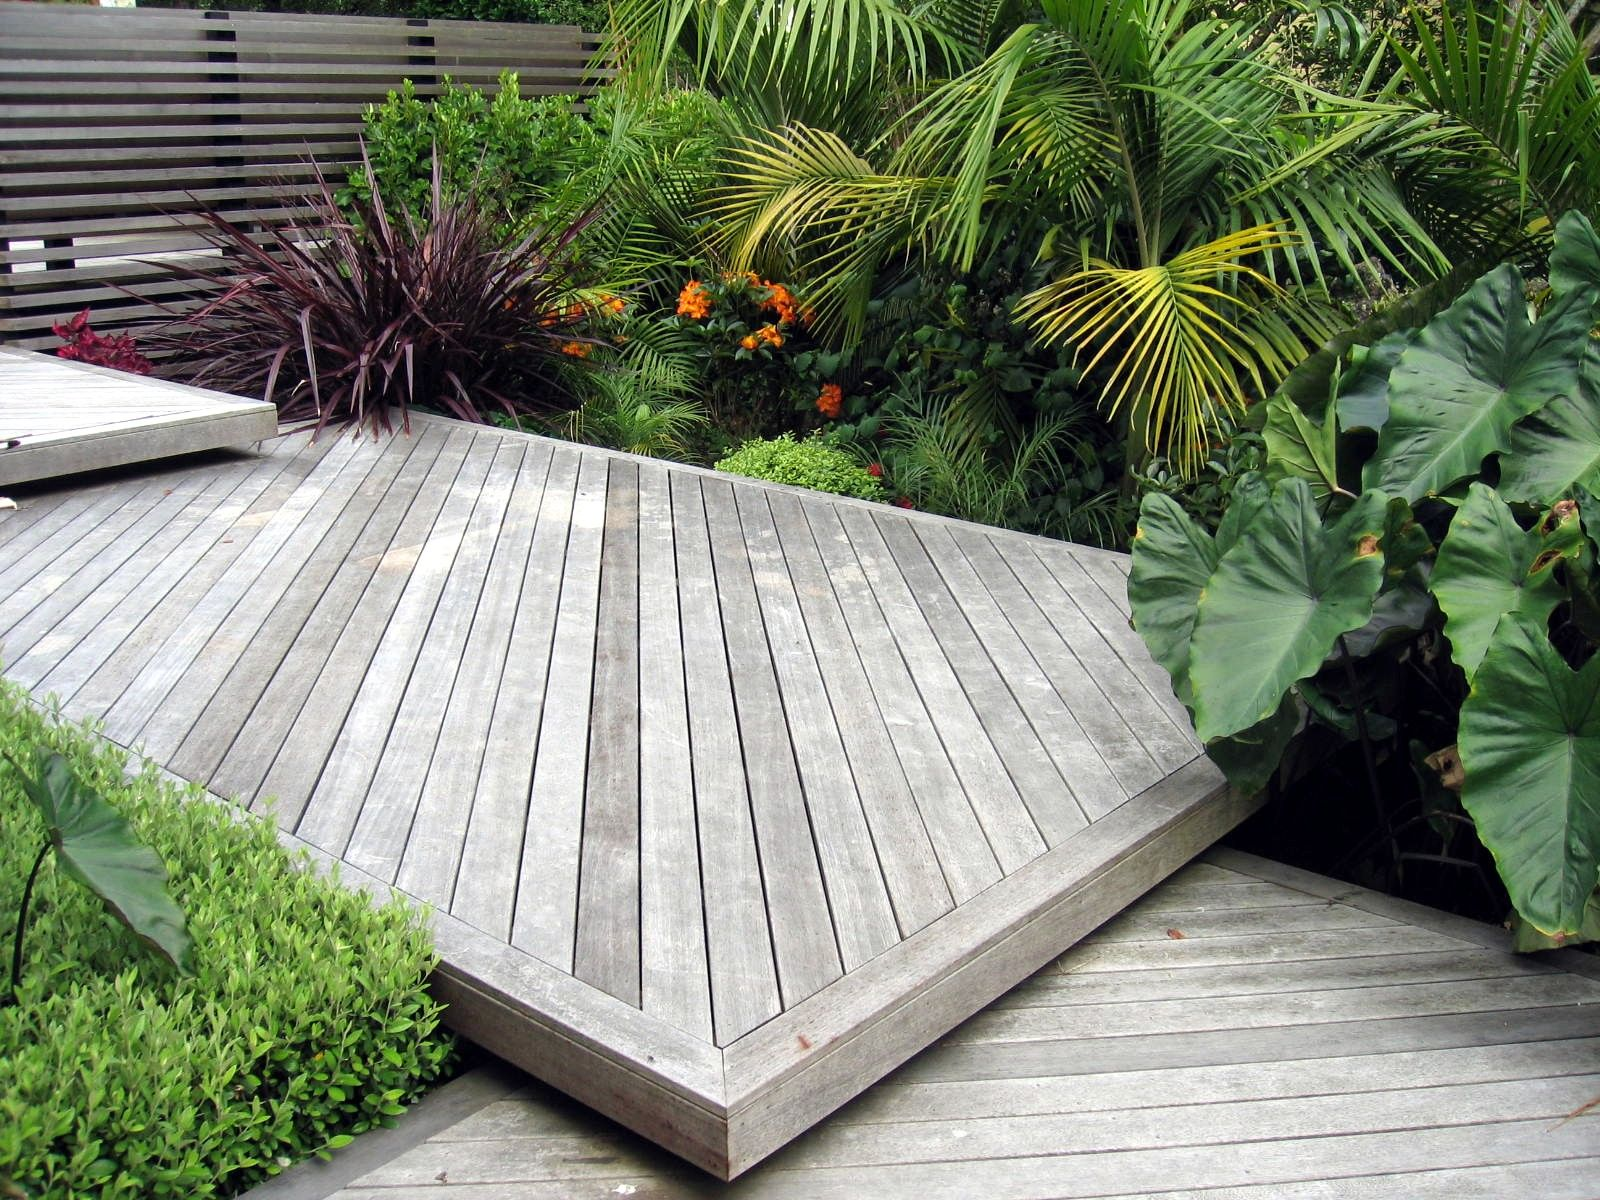 Stepped decking, screen and sub-tropical planting design ...